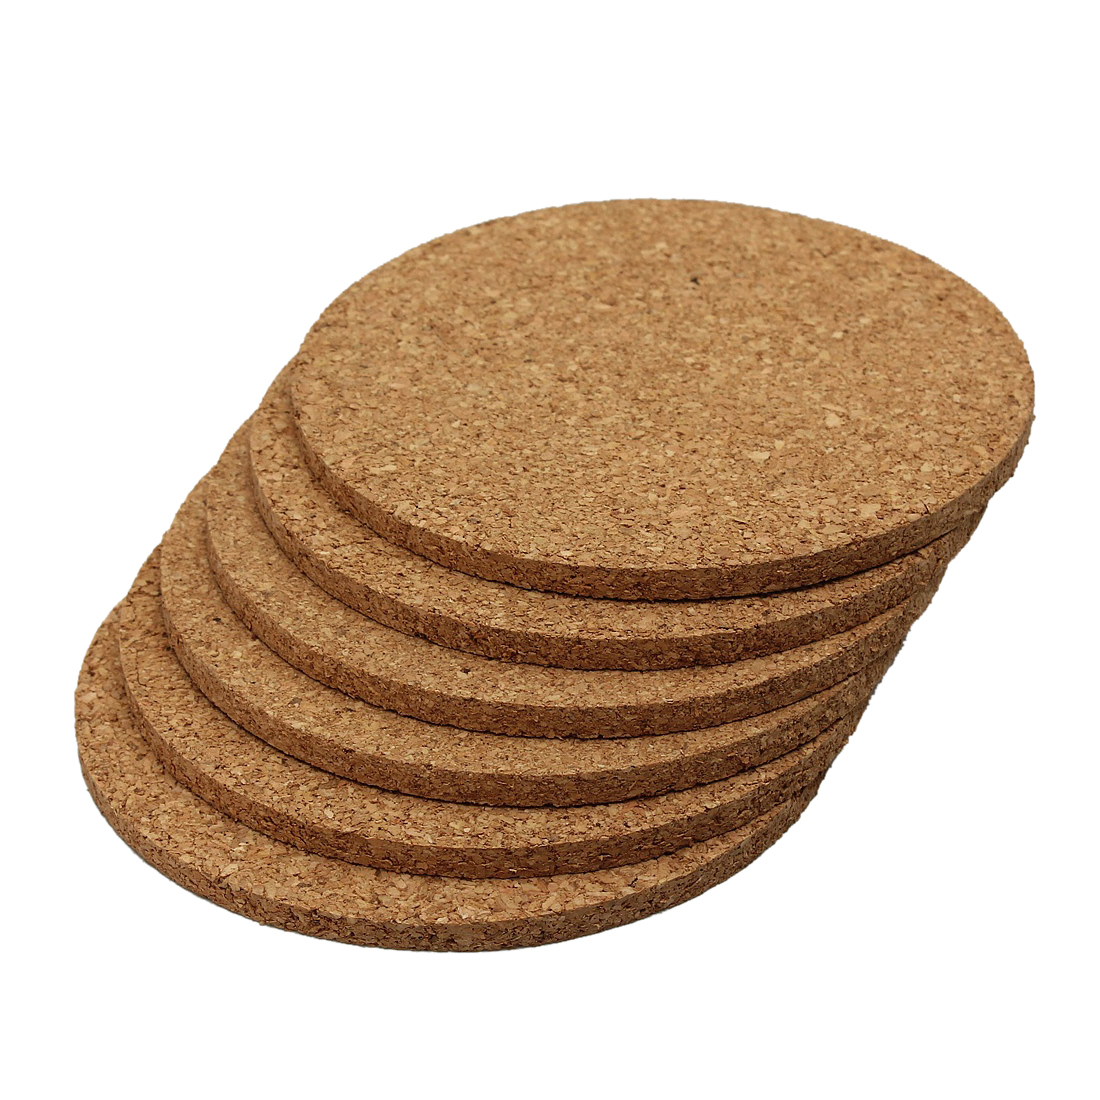 6pcs Plain Round Cork Coasters Coffee Drink Tea Cup Mat